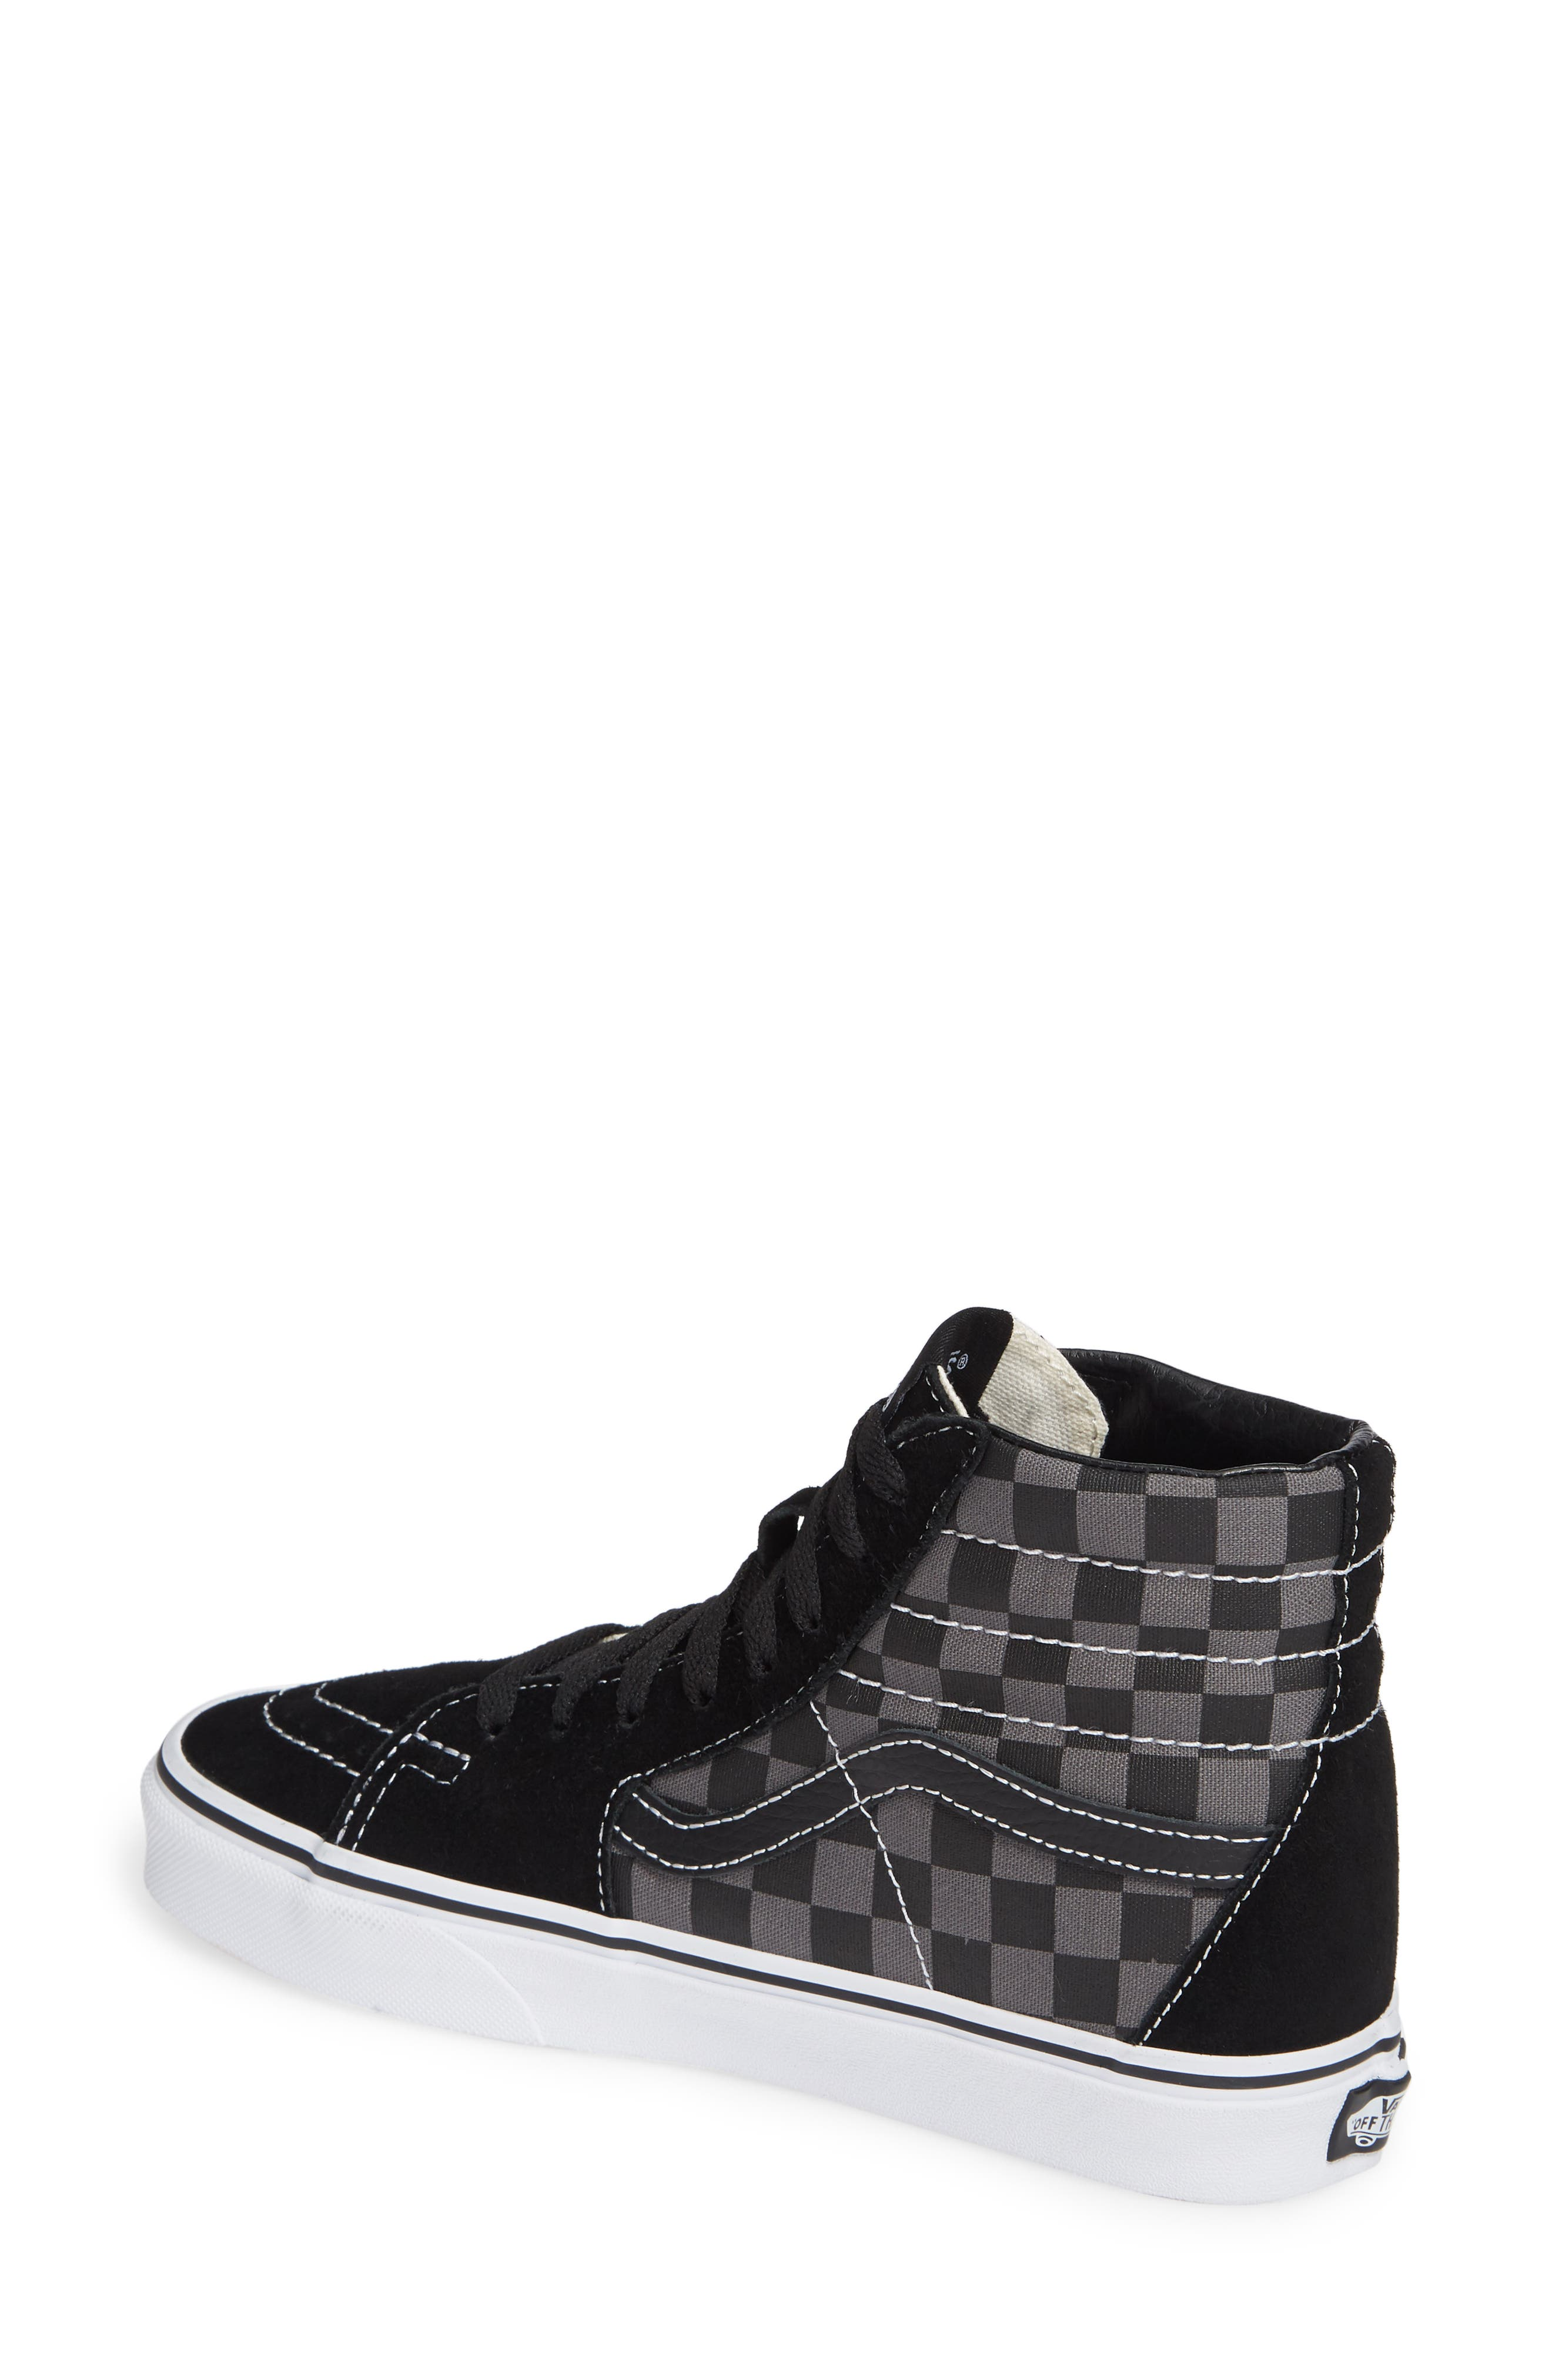 Sk8-Hi Checker Sneaker,                             Alternate thumbnail 2, color,                             BLACK/ PEWTER CHECKERBOARD